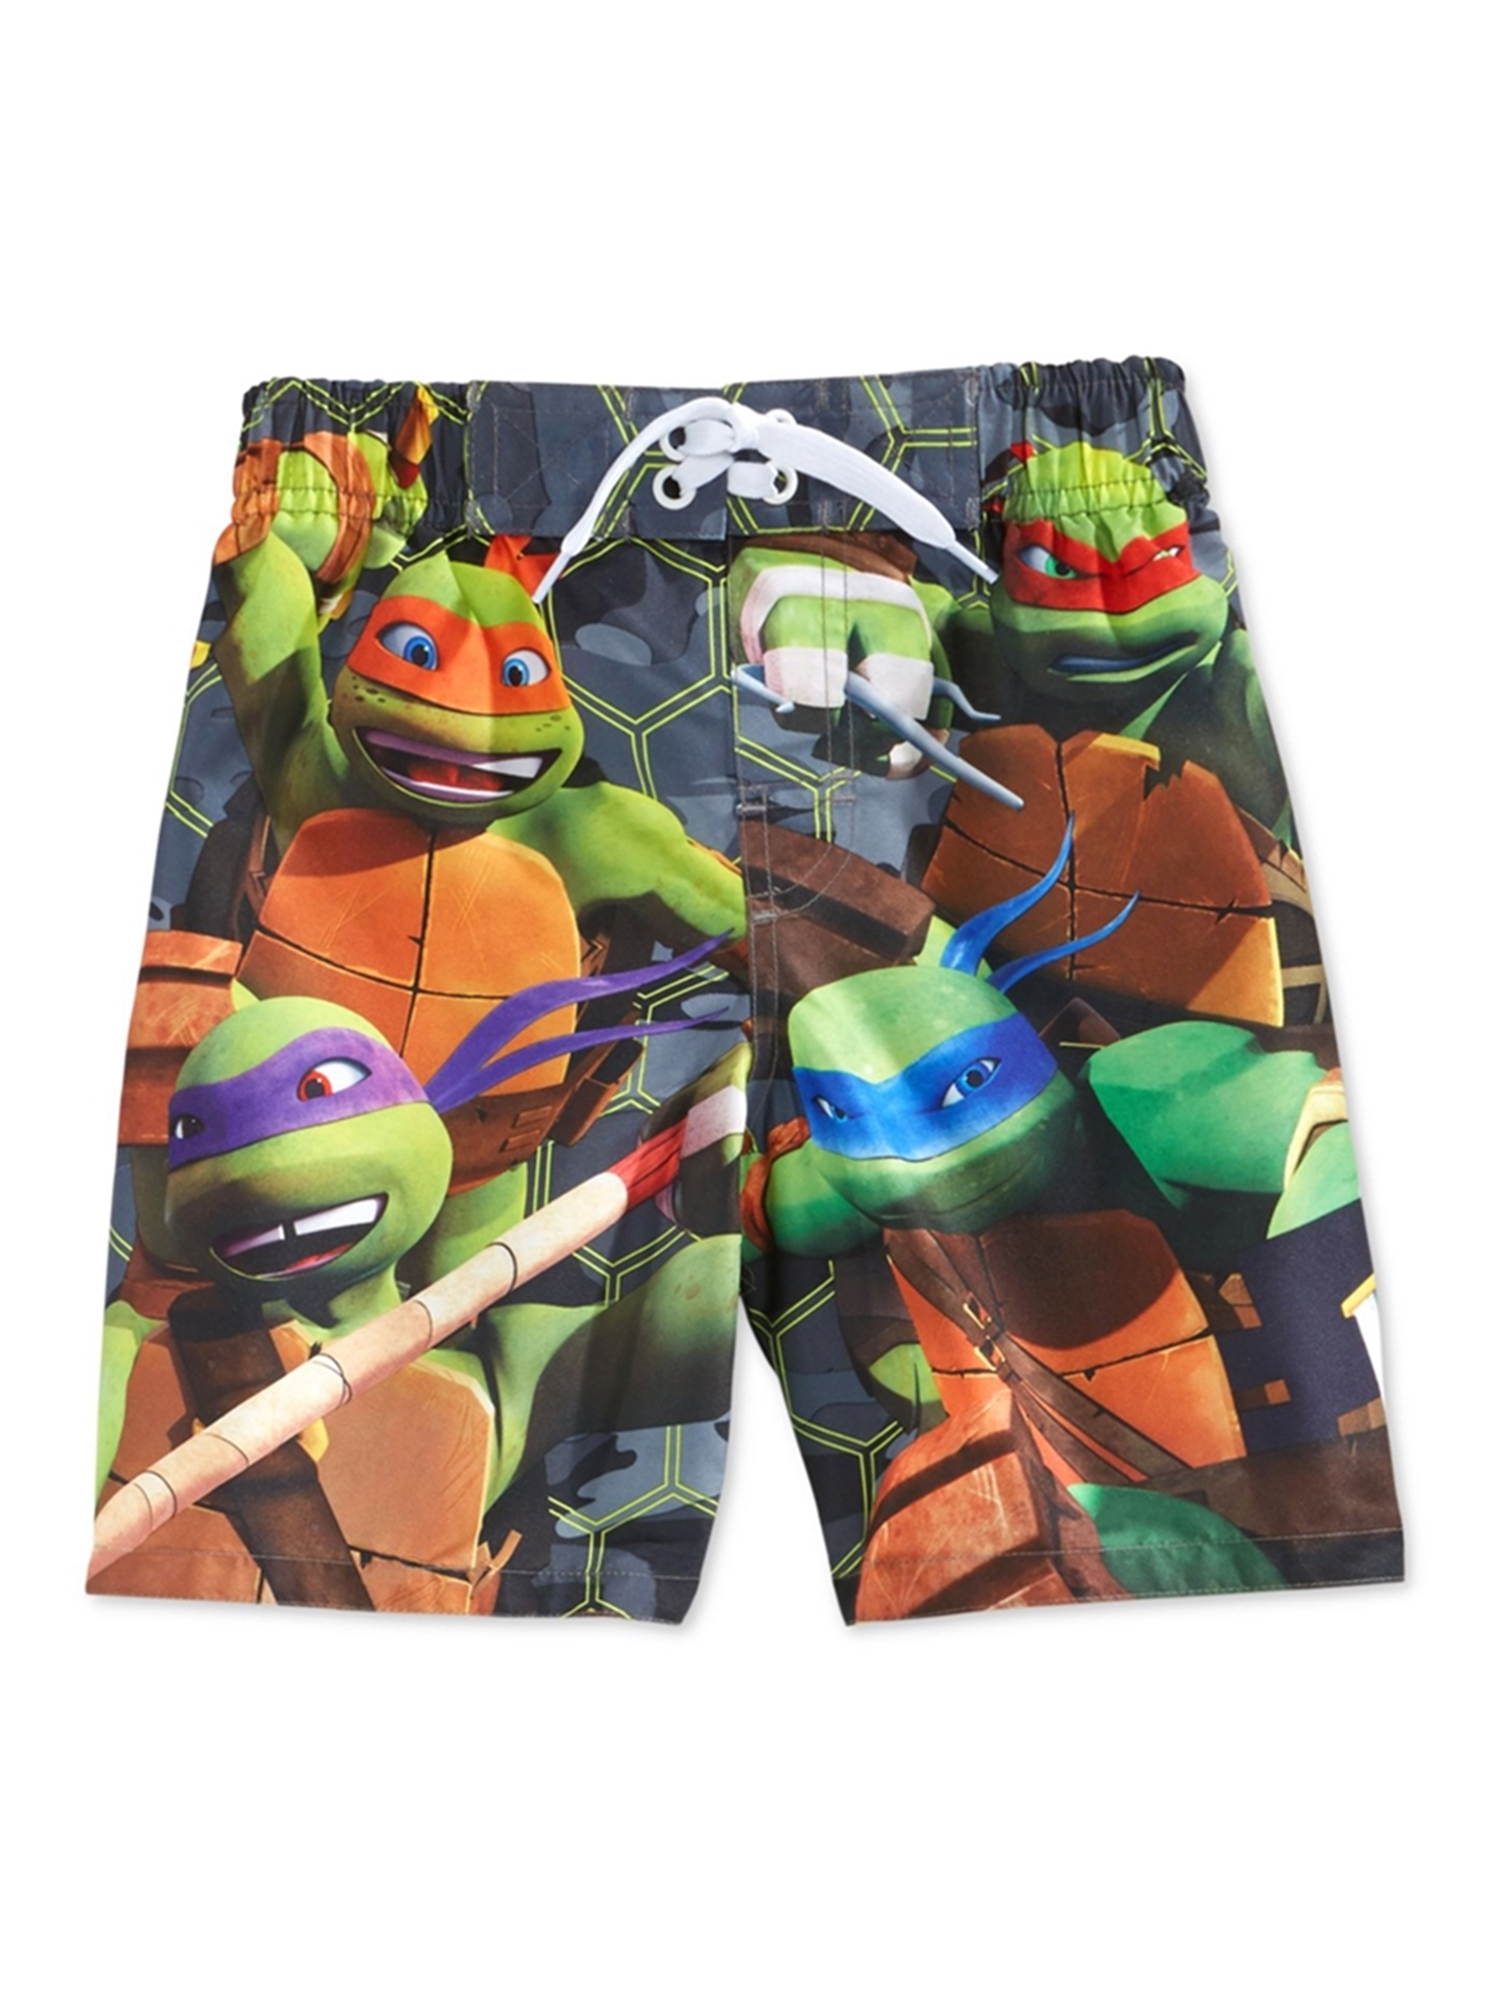 Nickelodeon Boys Teenage Mutant Ninja Turtles Swim Bottom Board Shorts